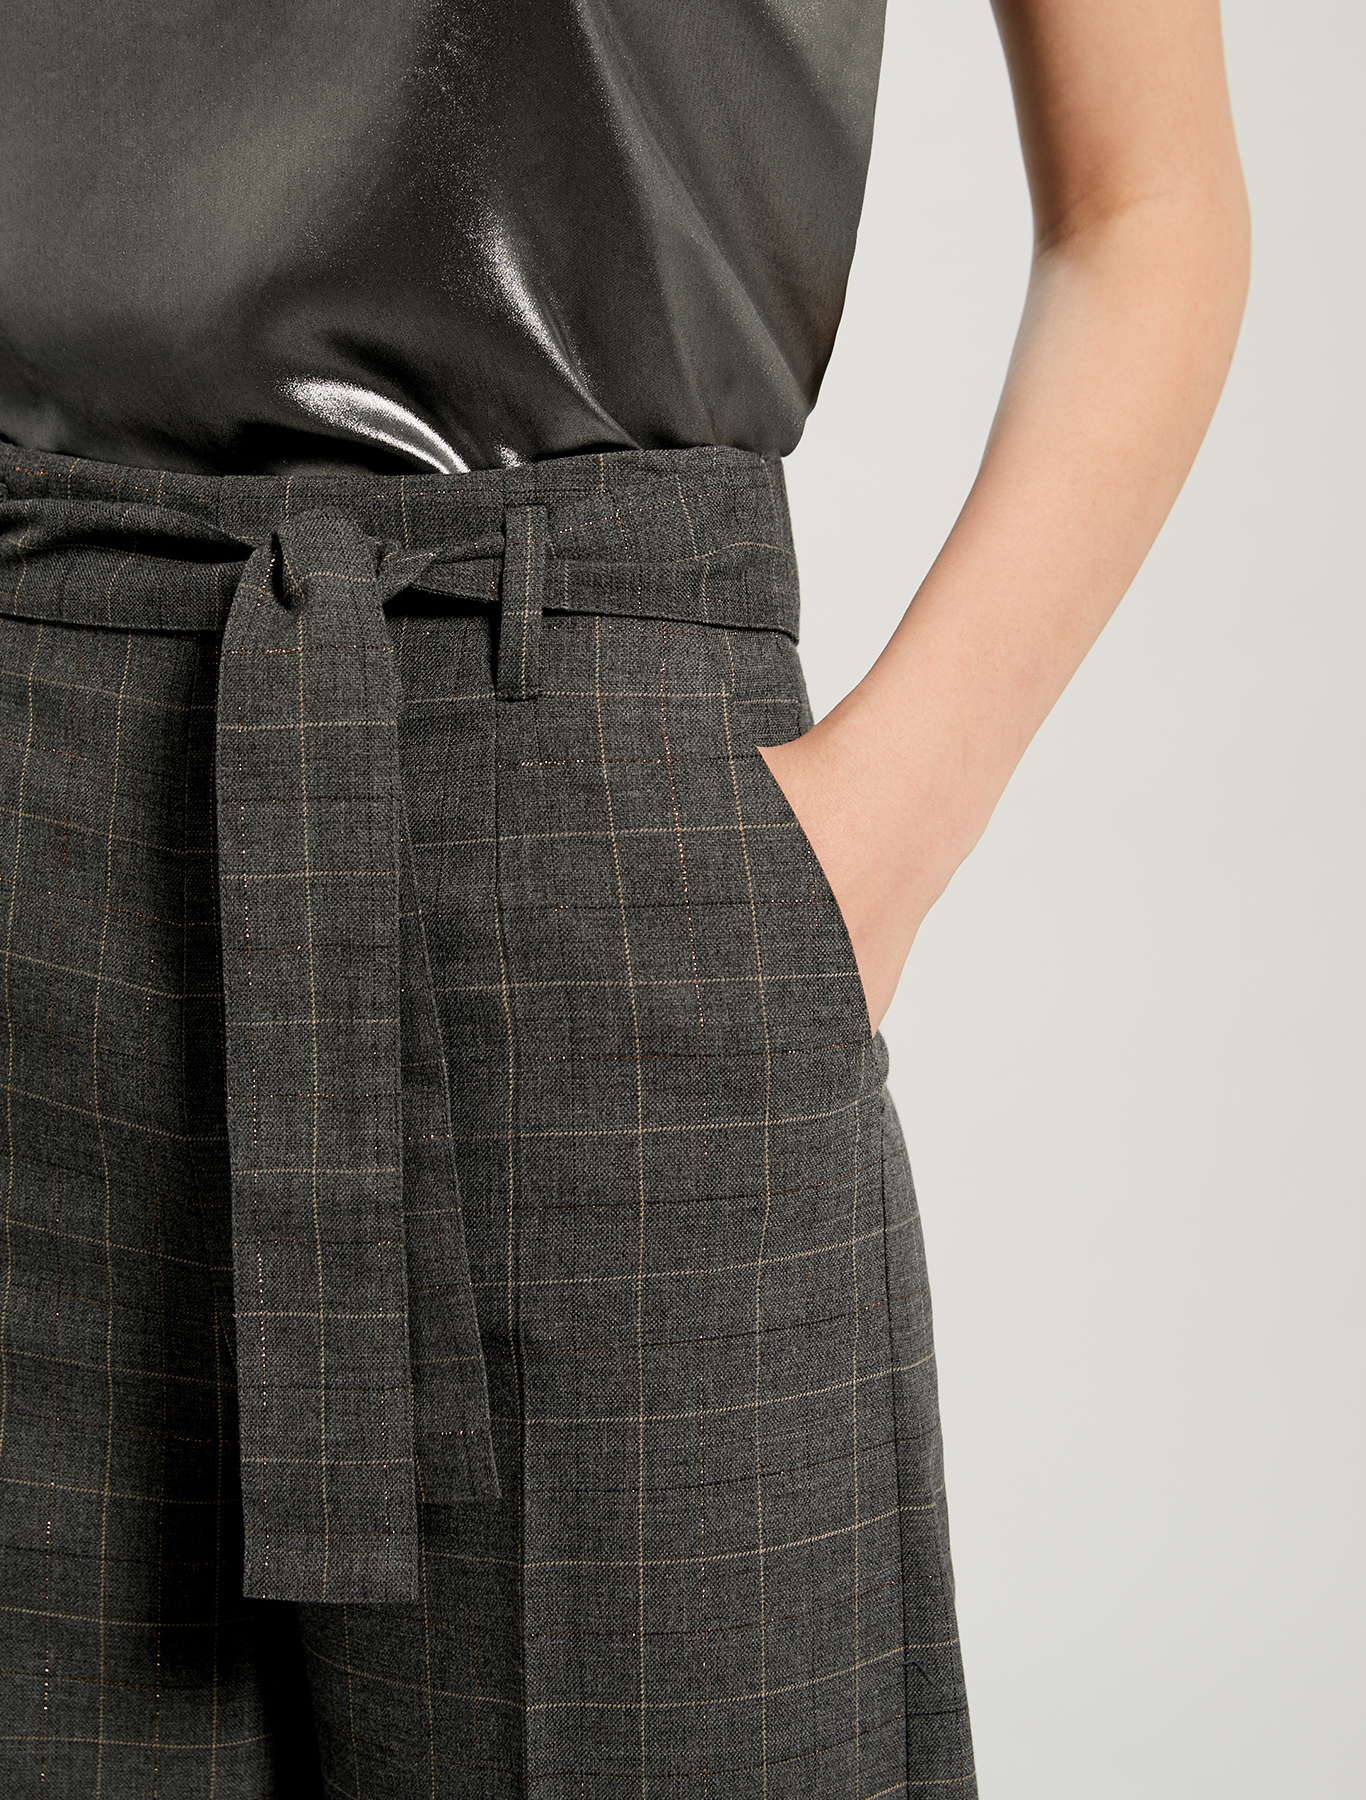 Wide leg trousers with lamé design - dark grey pattern - pennyblack